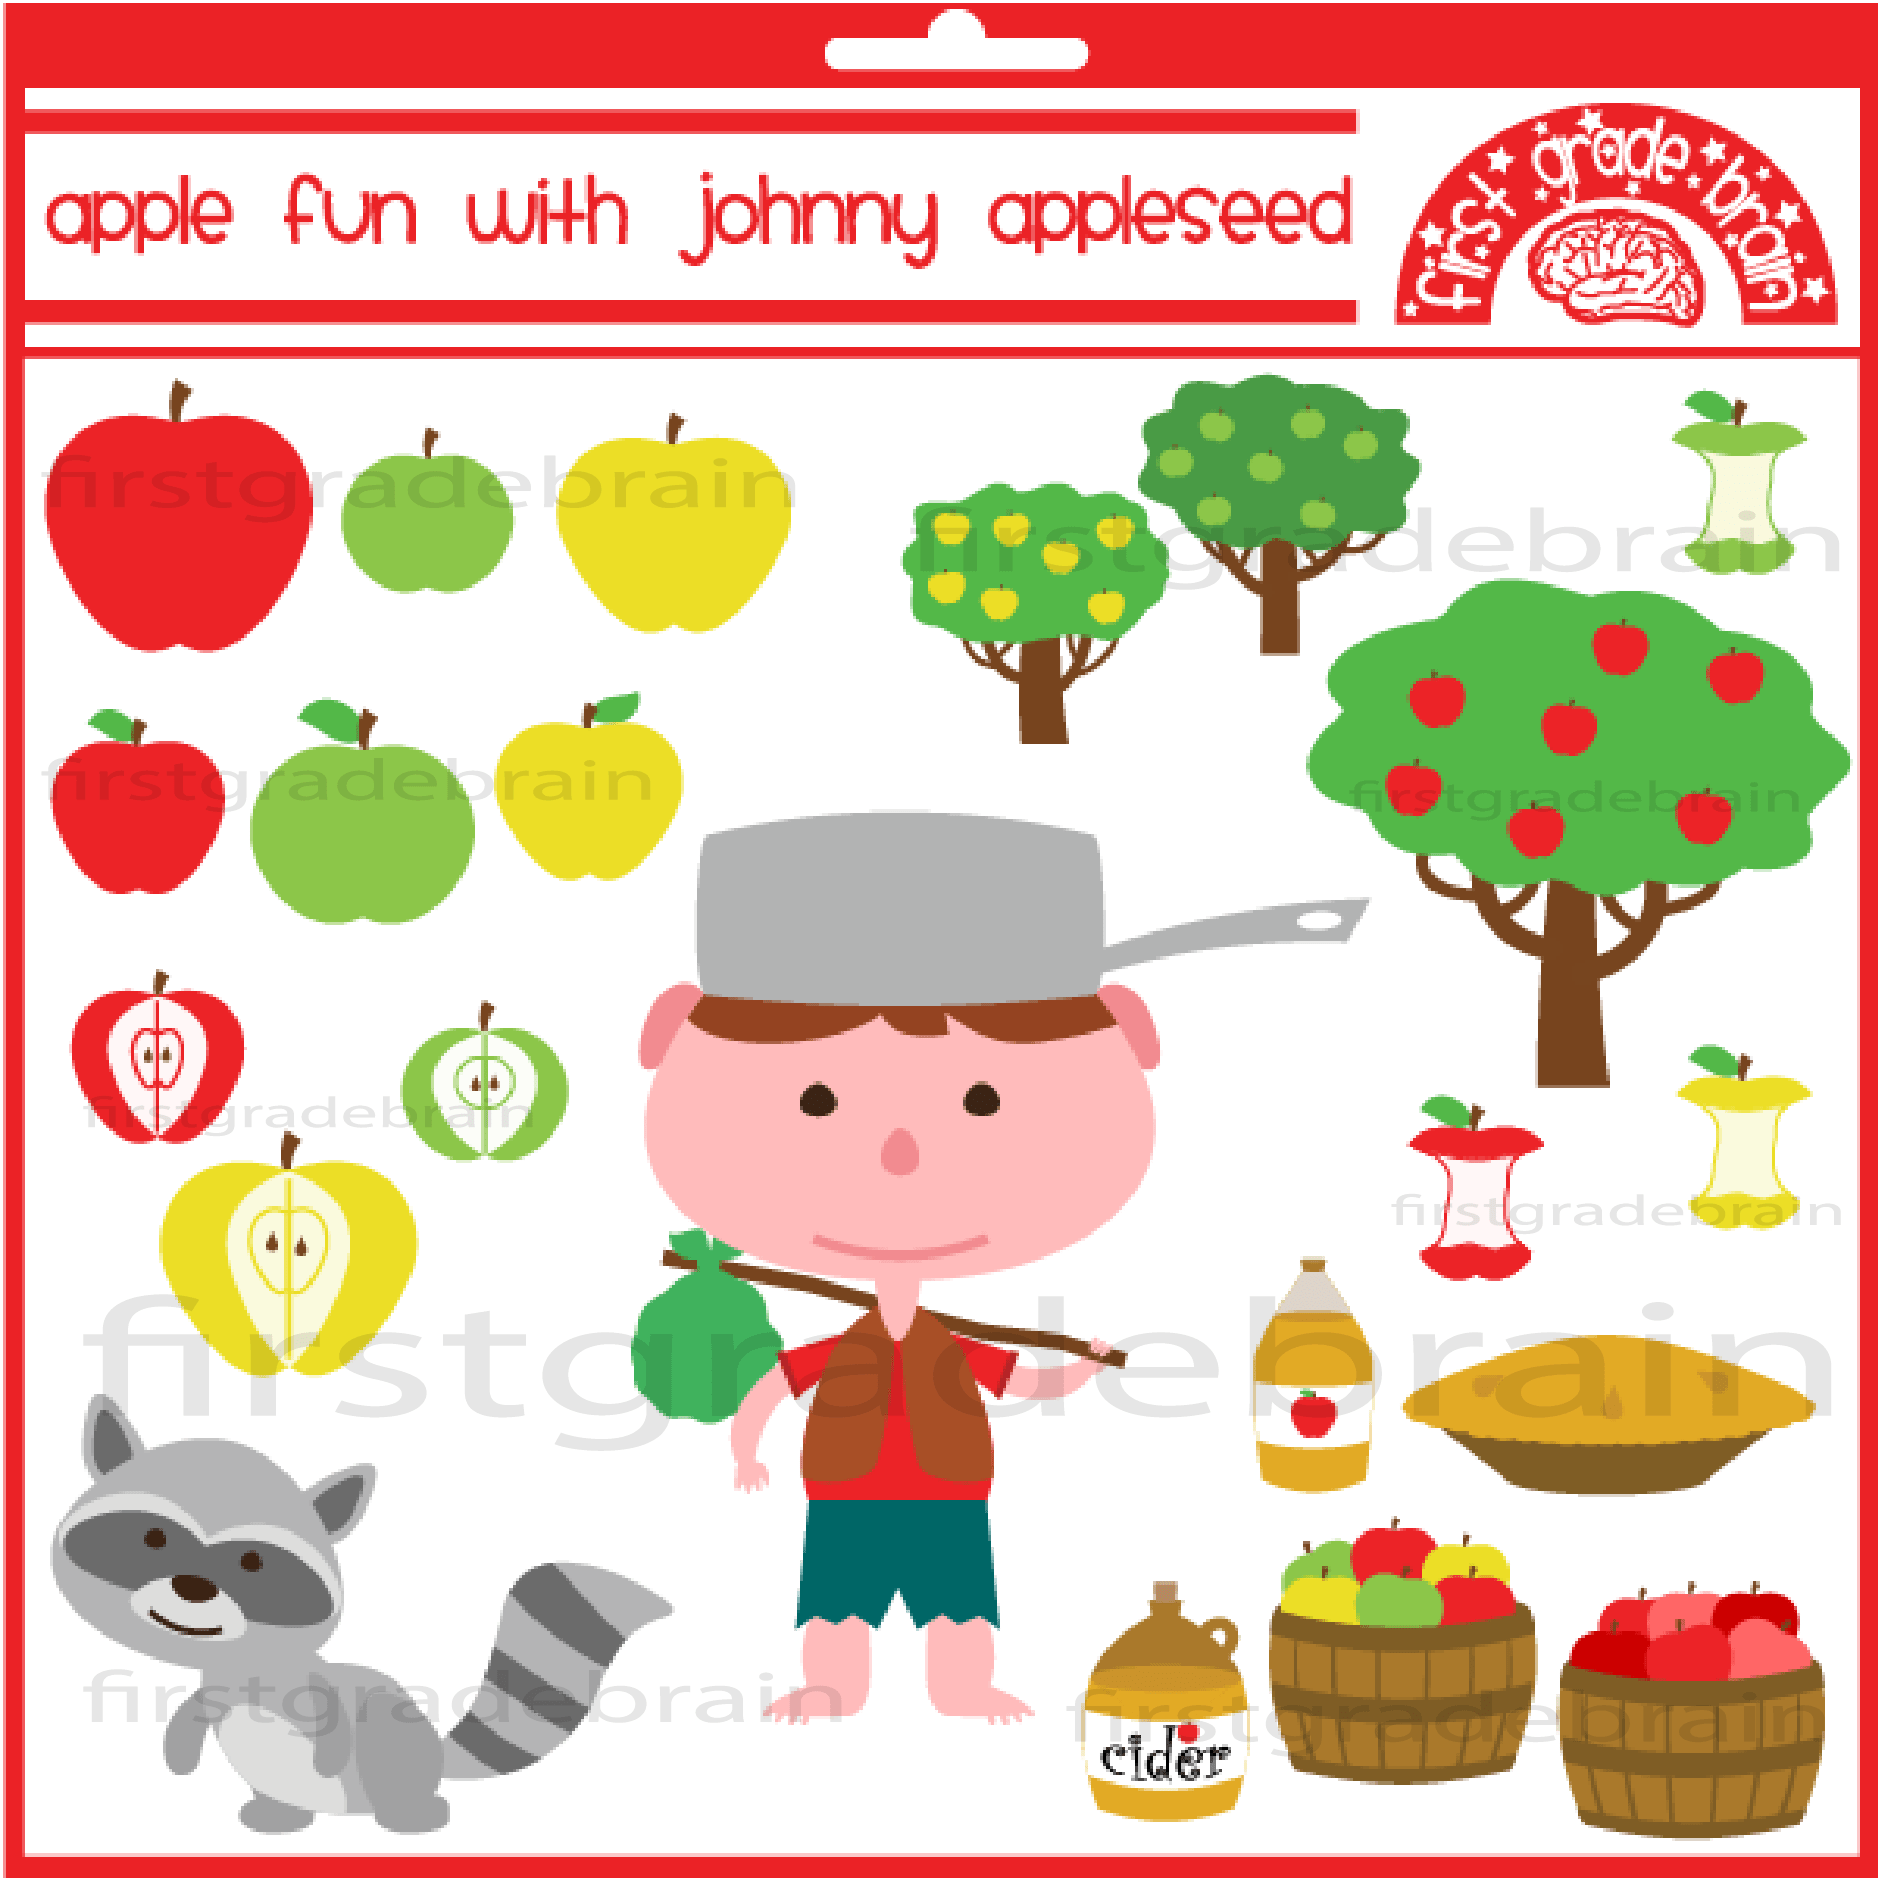 1878x1882 Apple Fun With Johnny Appleseed Clipart Graphics For Personal